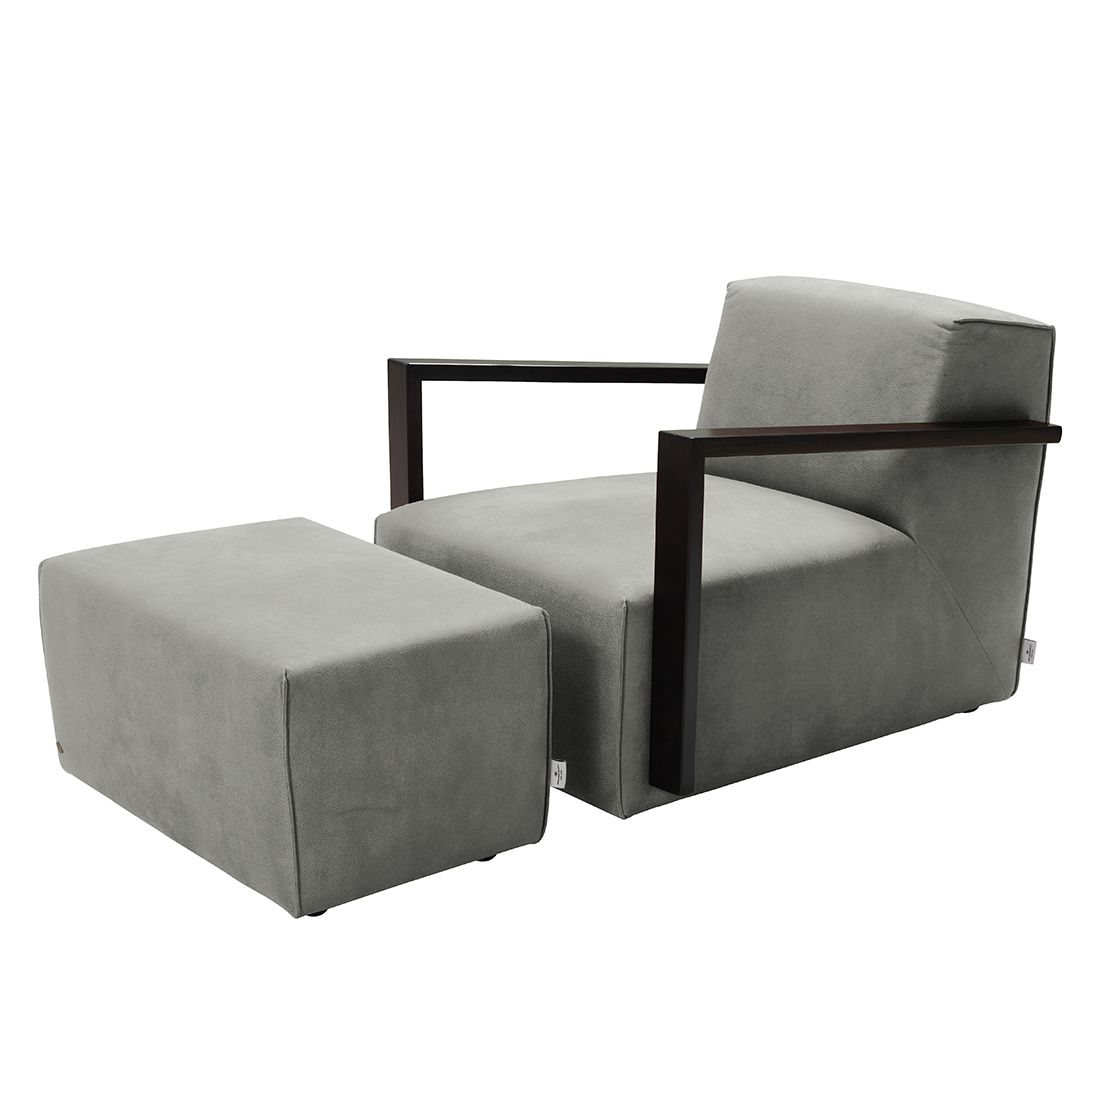 goedkoop Fauteuil Lazy antiekleren look Hocker Grijs Tom Tailor